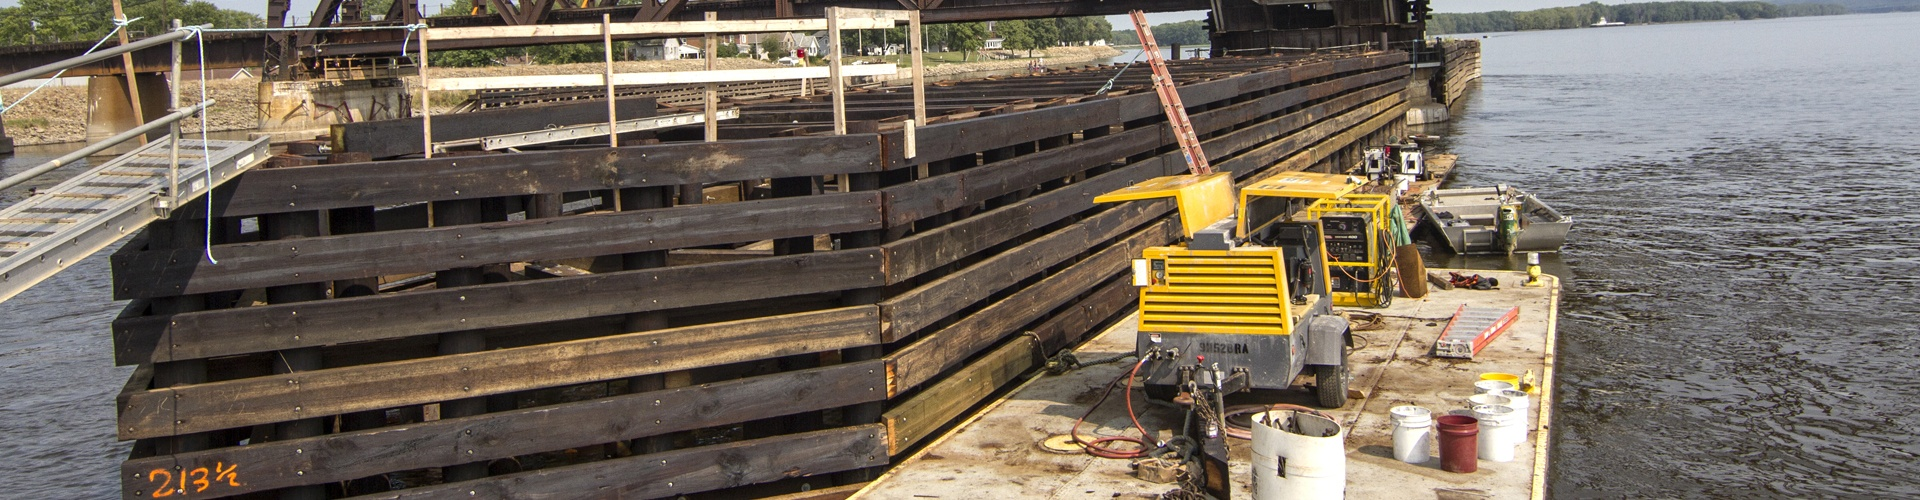 timber cribbing, bridge protection systems, railroad bridge protection, navigation protection